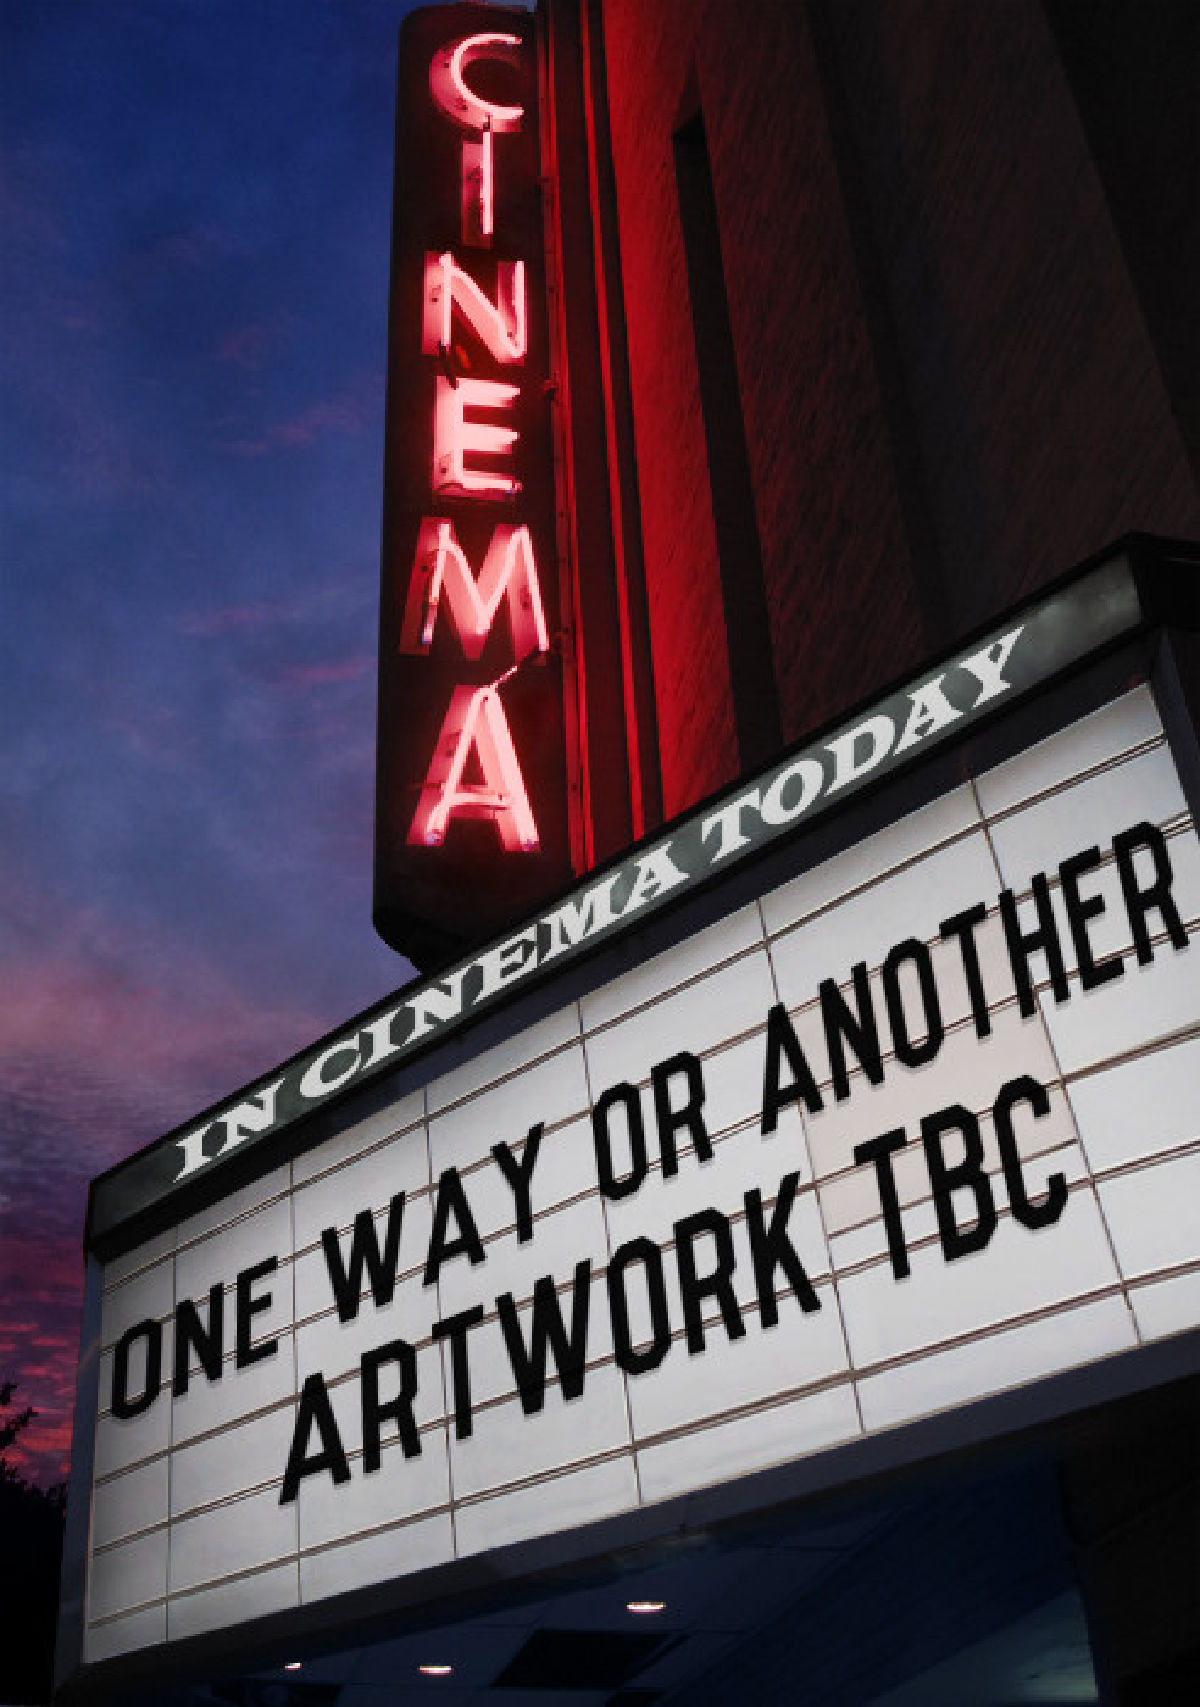 'One Way Or Another (De Cierta Manera)' movie poster